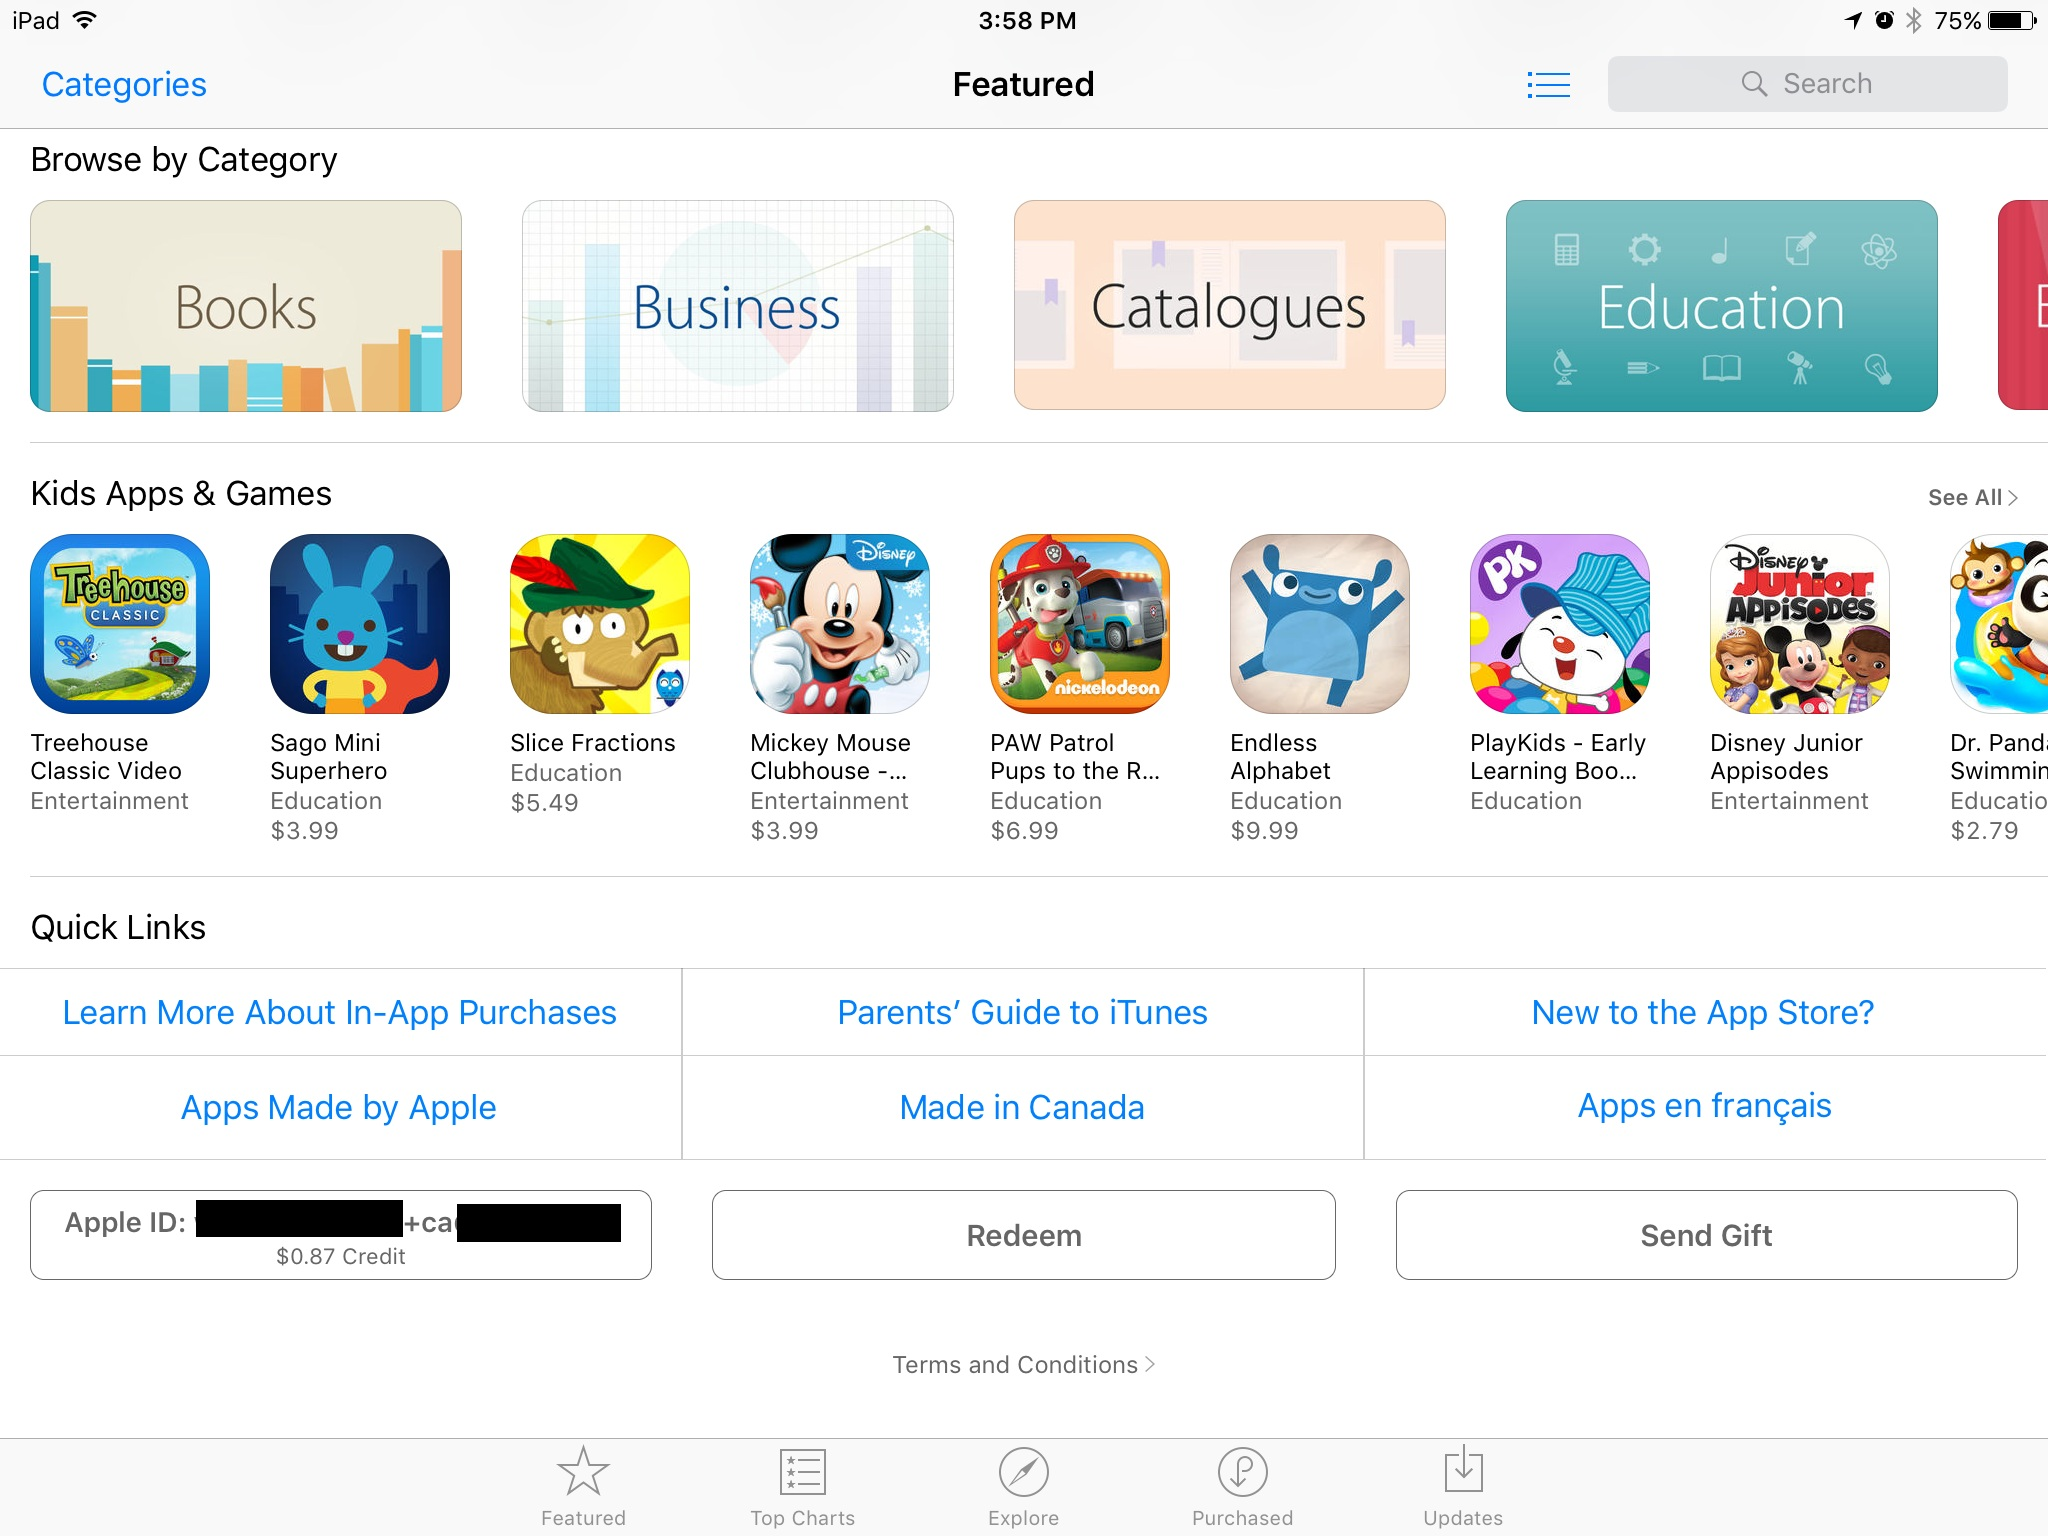 How to Soft Launch - Apple ID on App Store